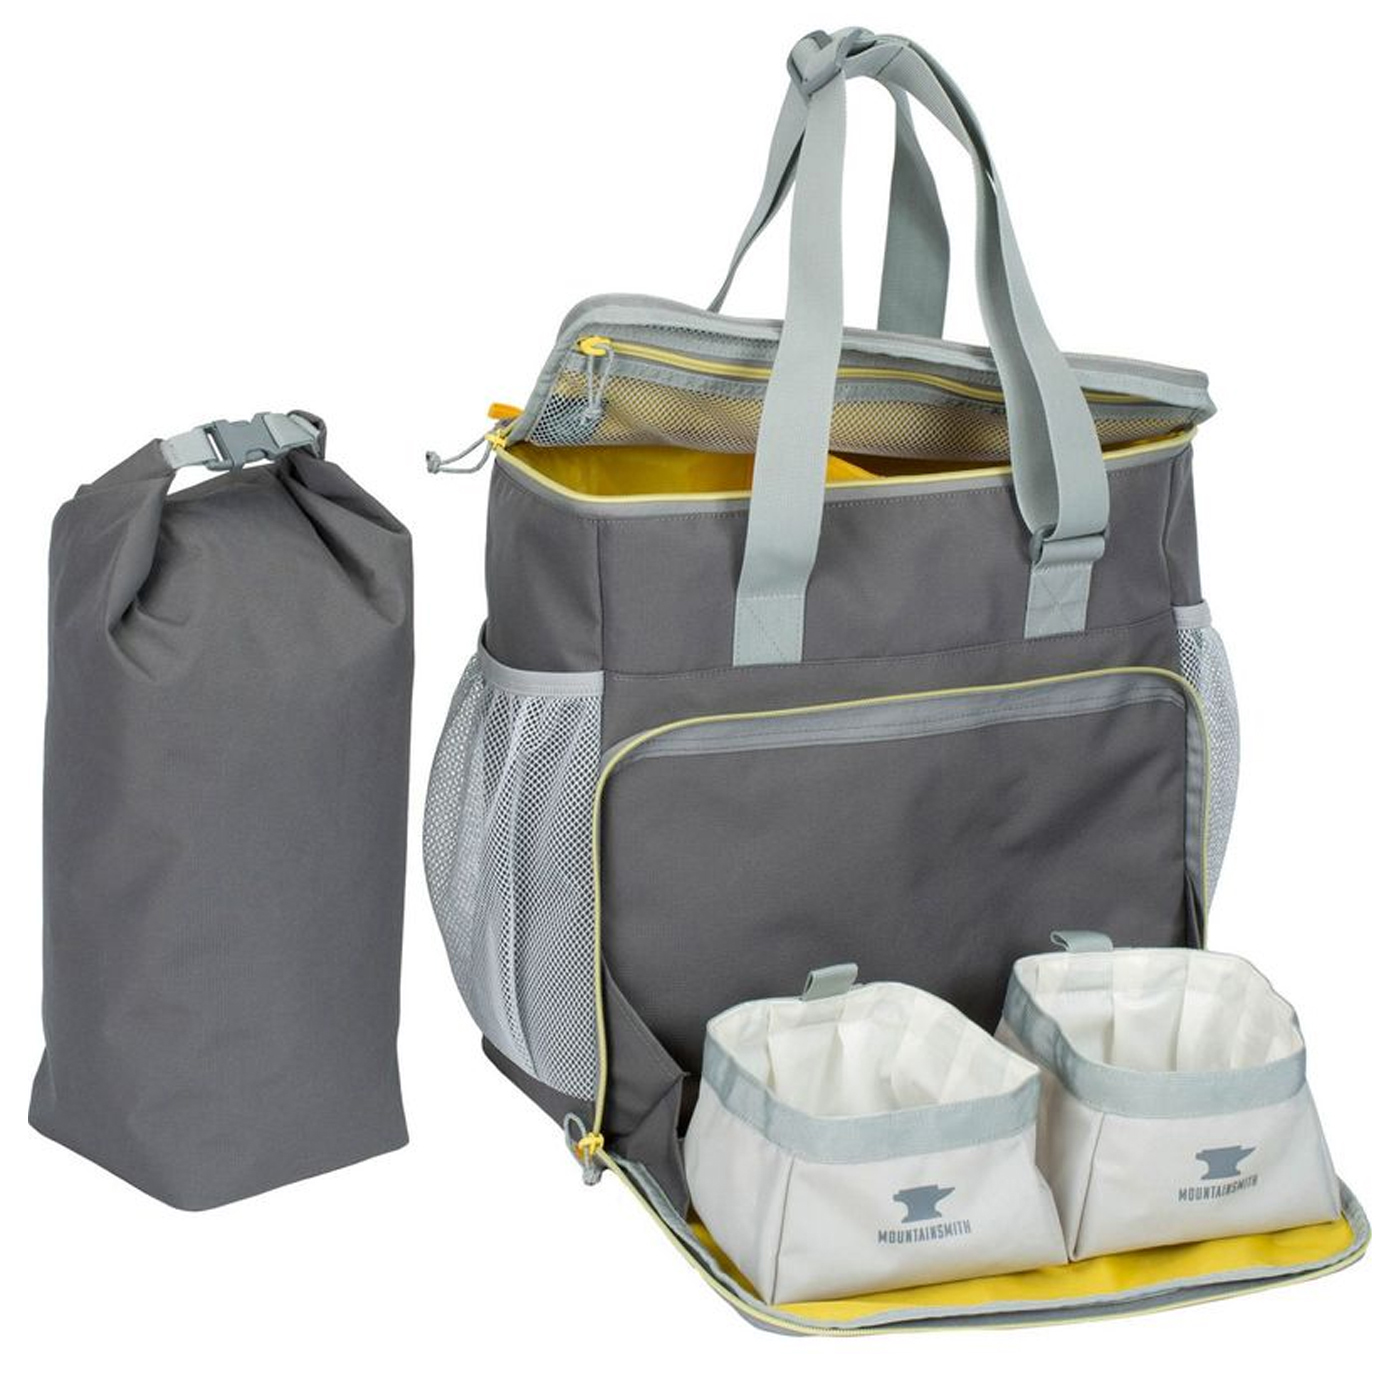 product: K-9 CUBE / color: GREY 2